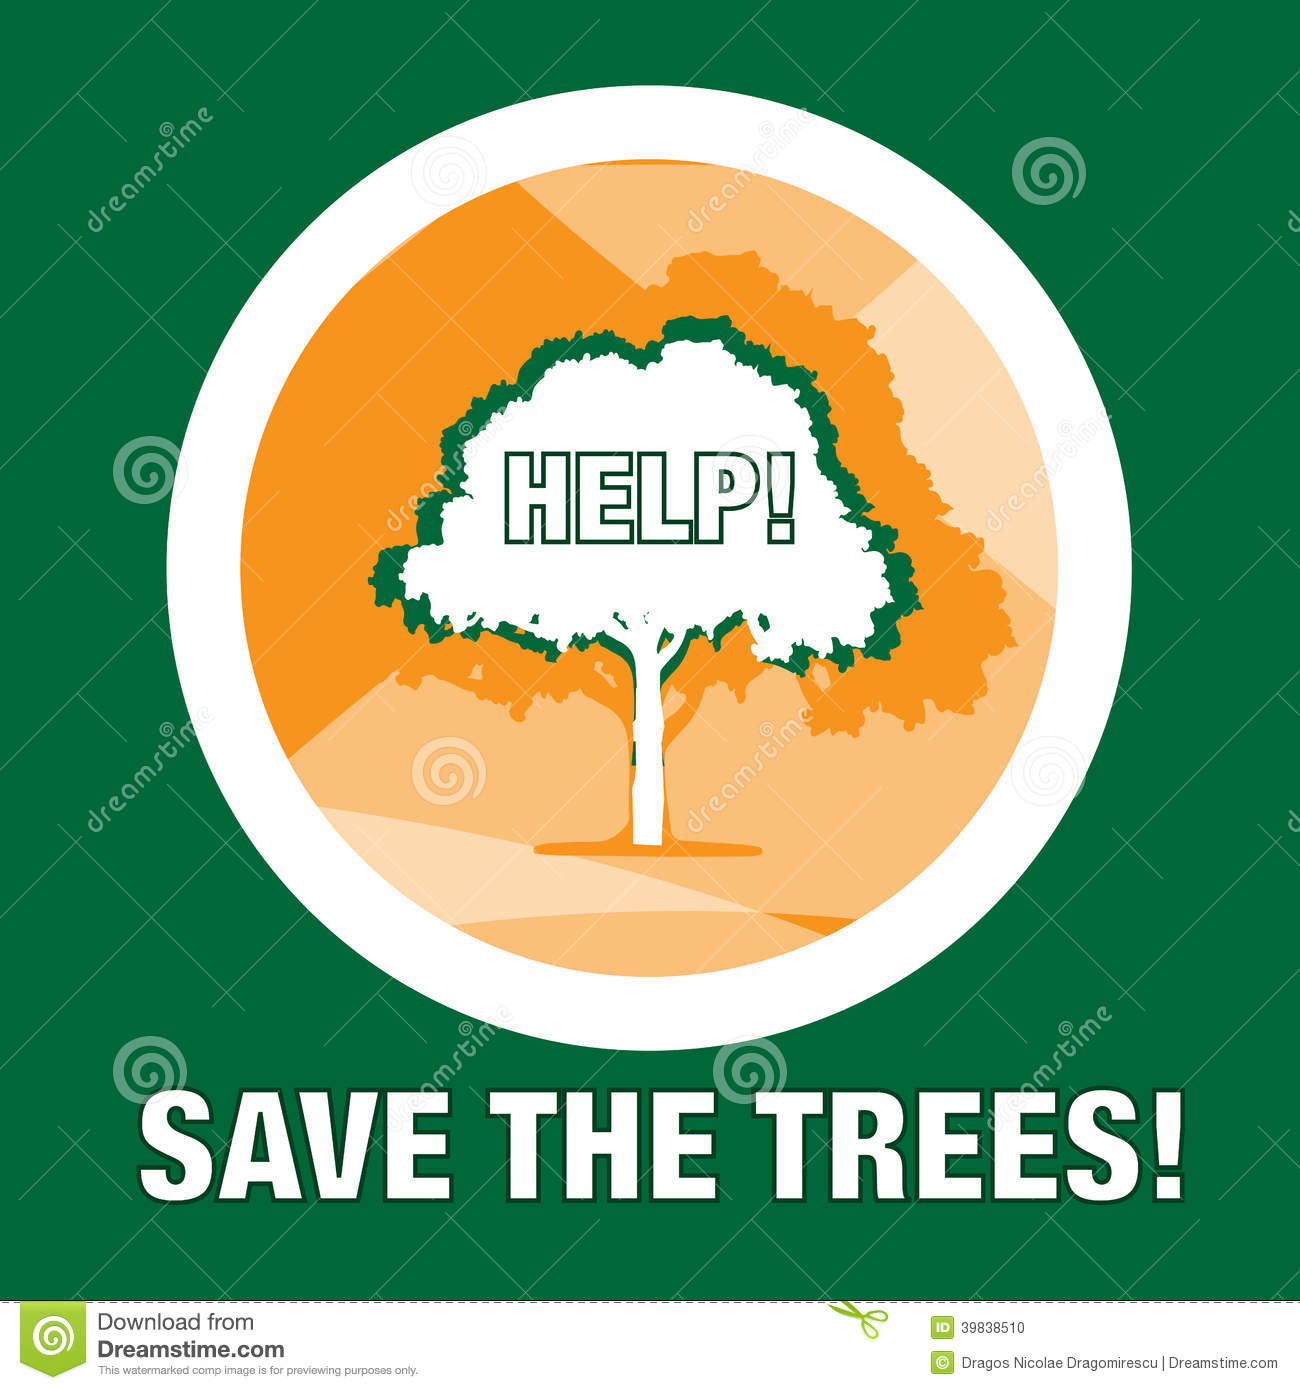 Save the forest / trees print or logo